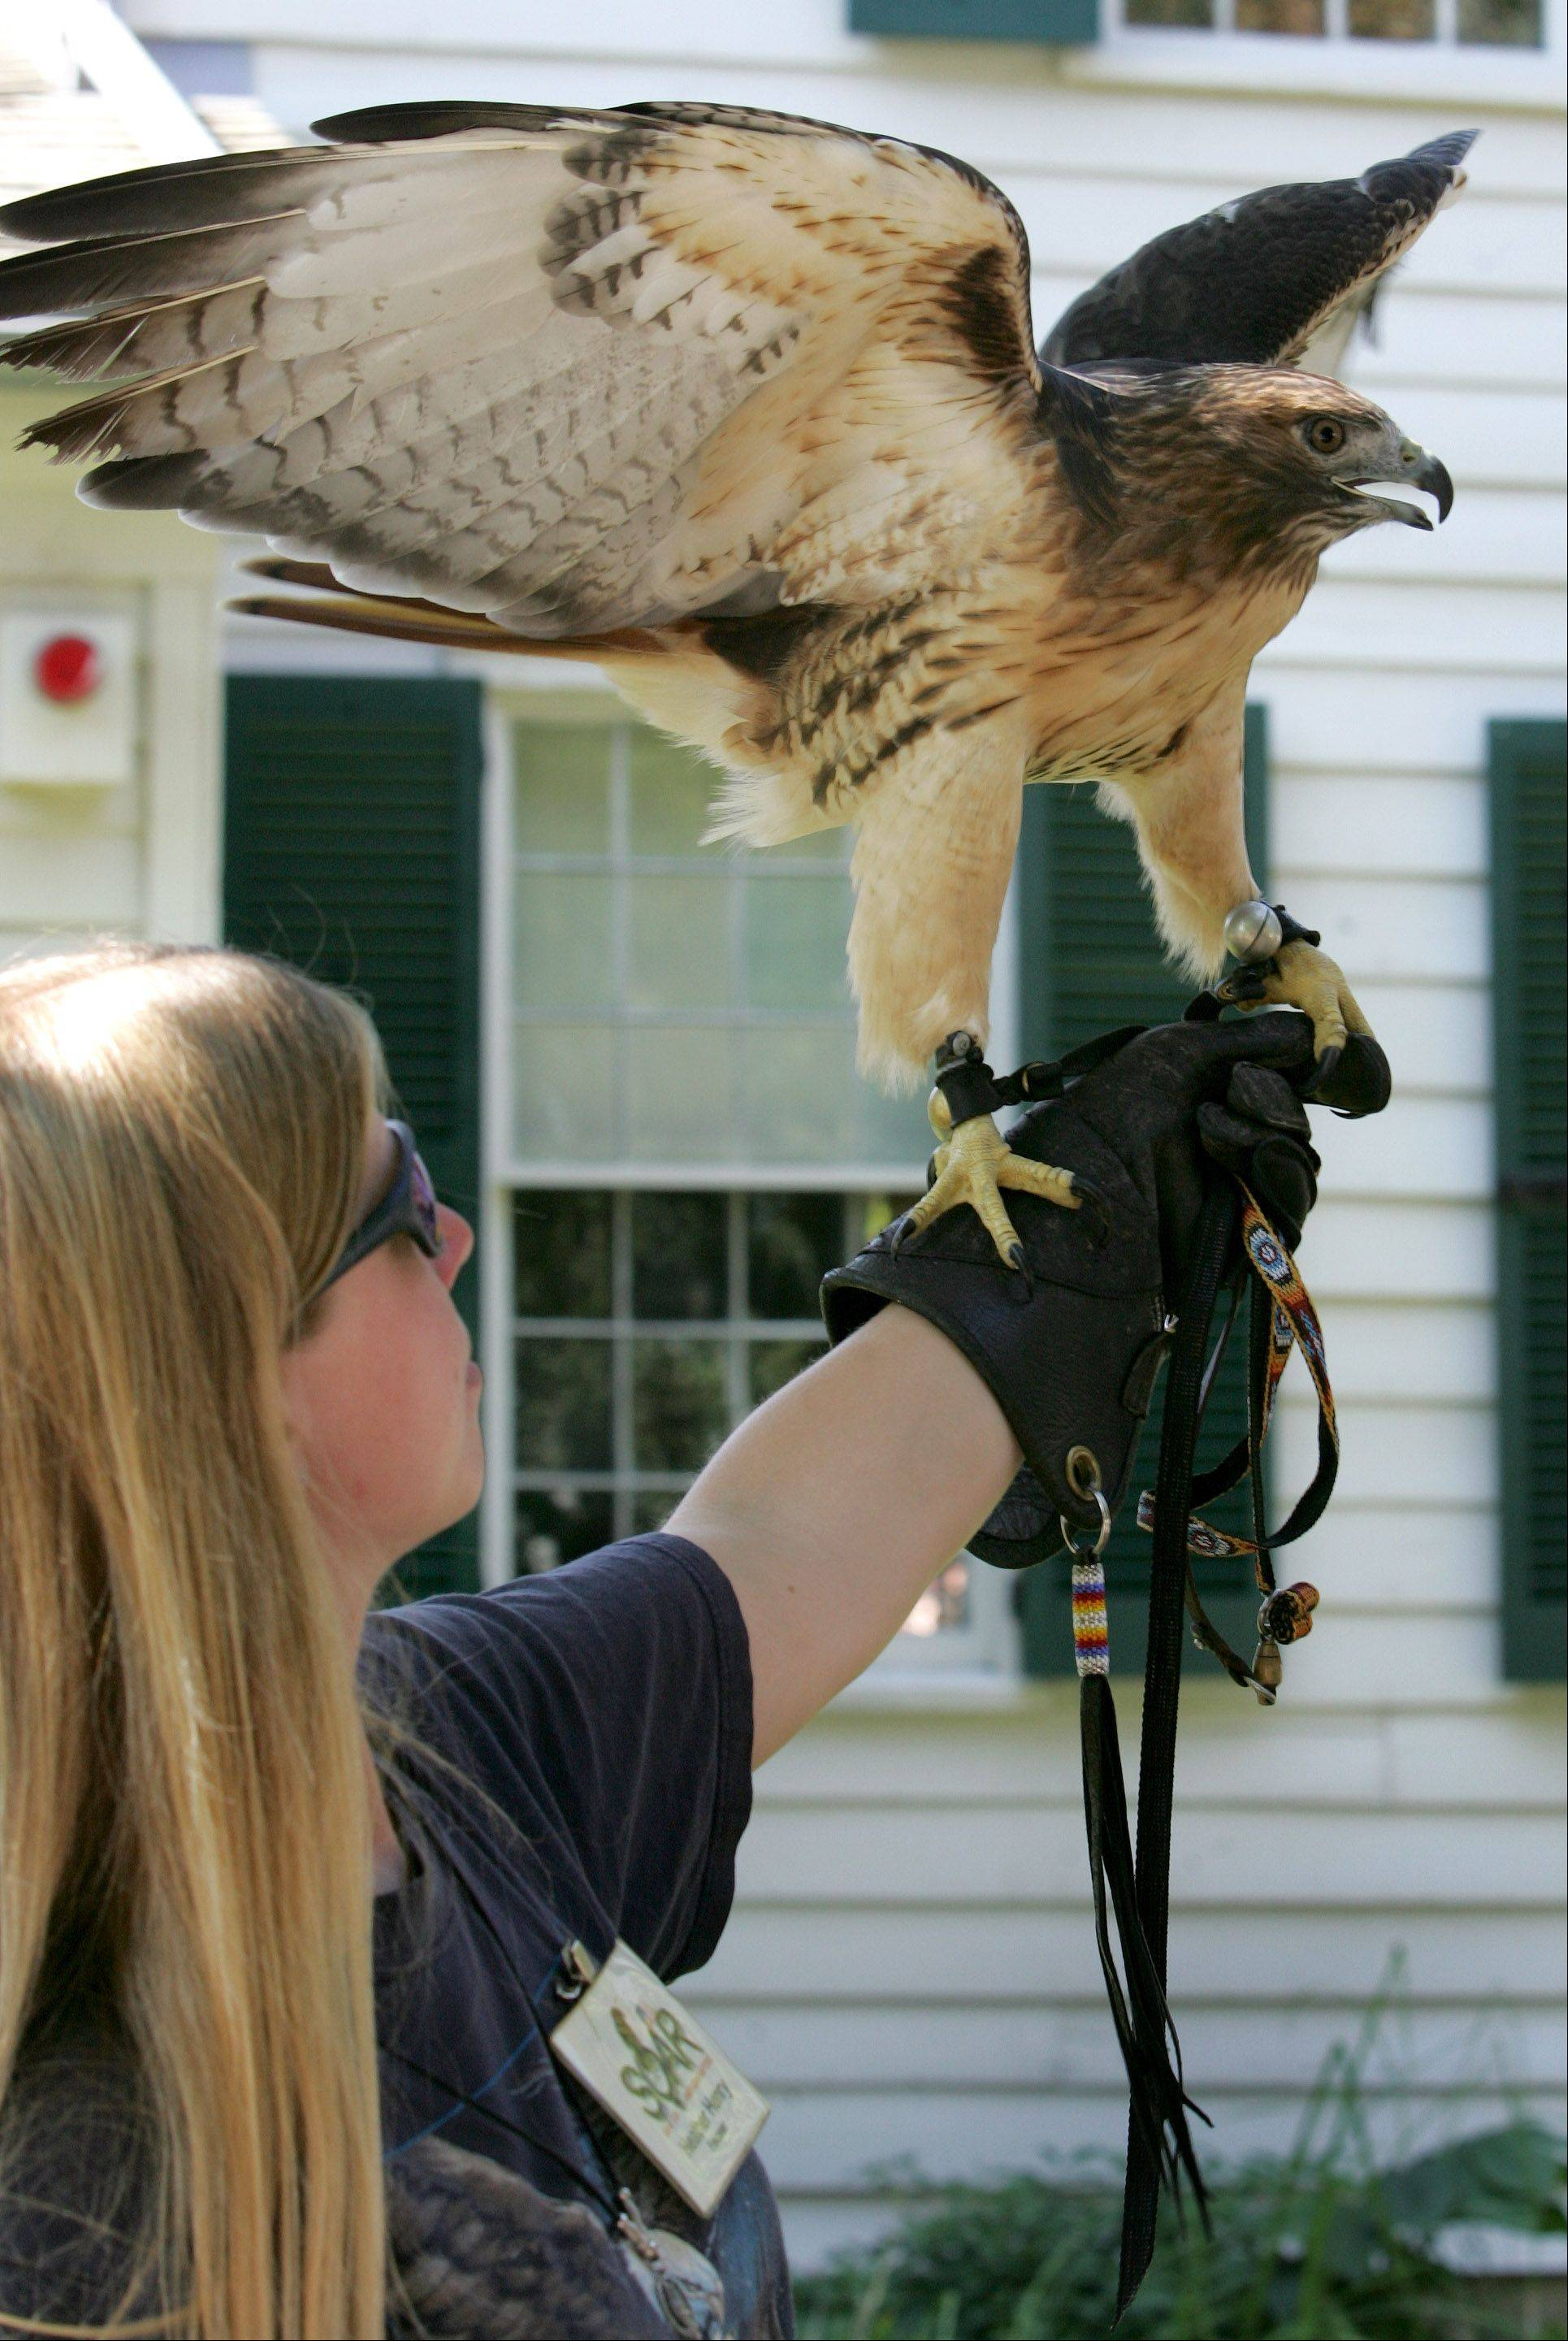 Visitors can see red-tailed hawks and other birds of prey -- including a bald eagle -- in presentations by SOAR Illinois during the Harvest Pow Wow at Naper Settlement.